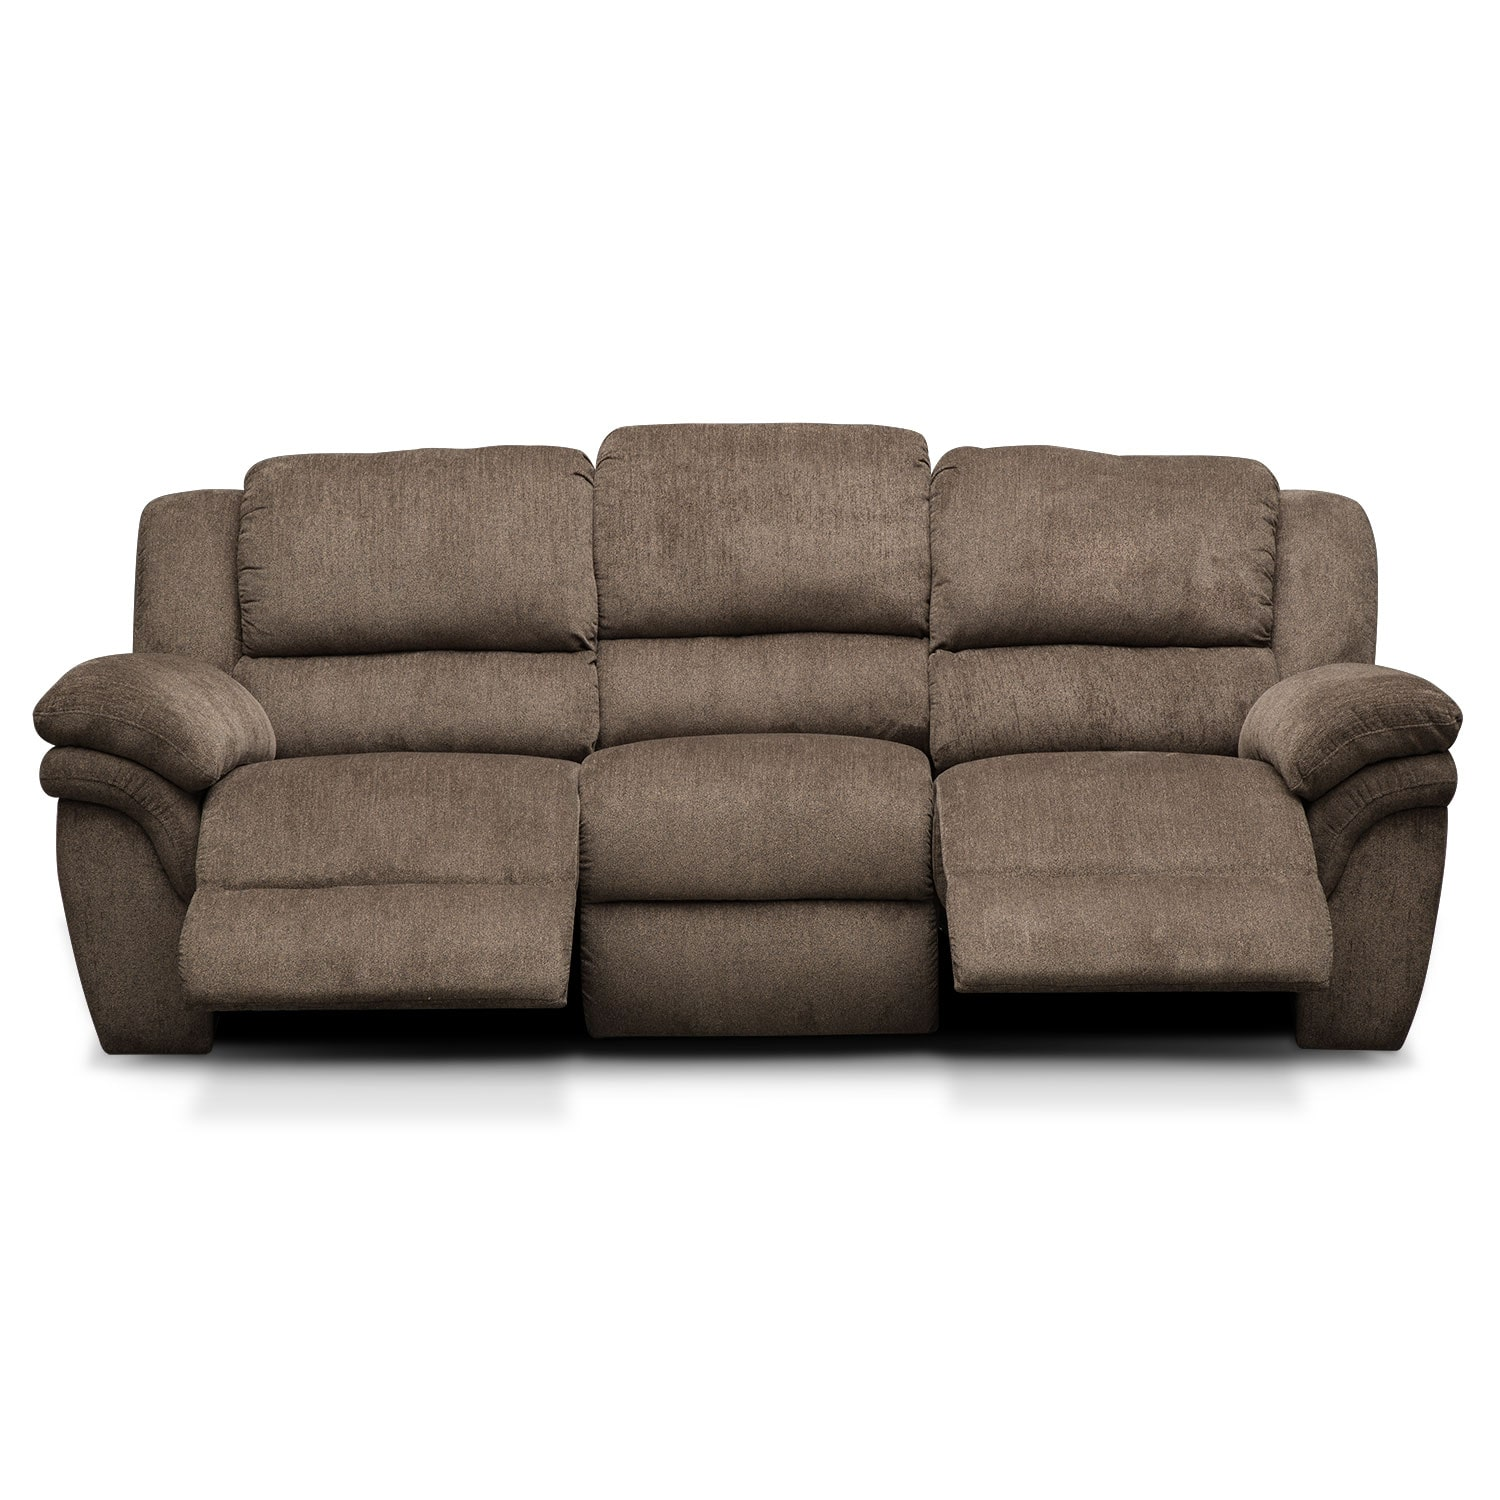 Aldo Manual Reclining Sofa Mocha Value City Furniture